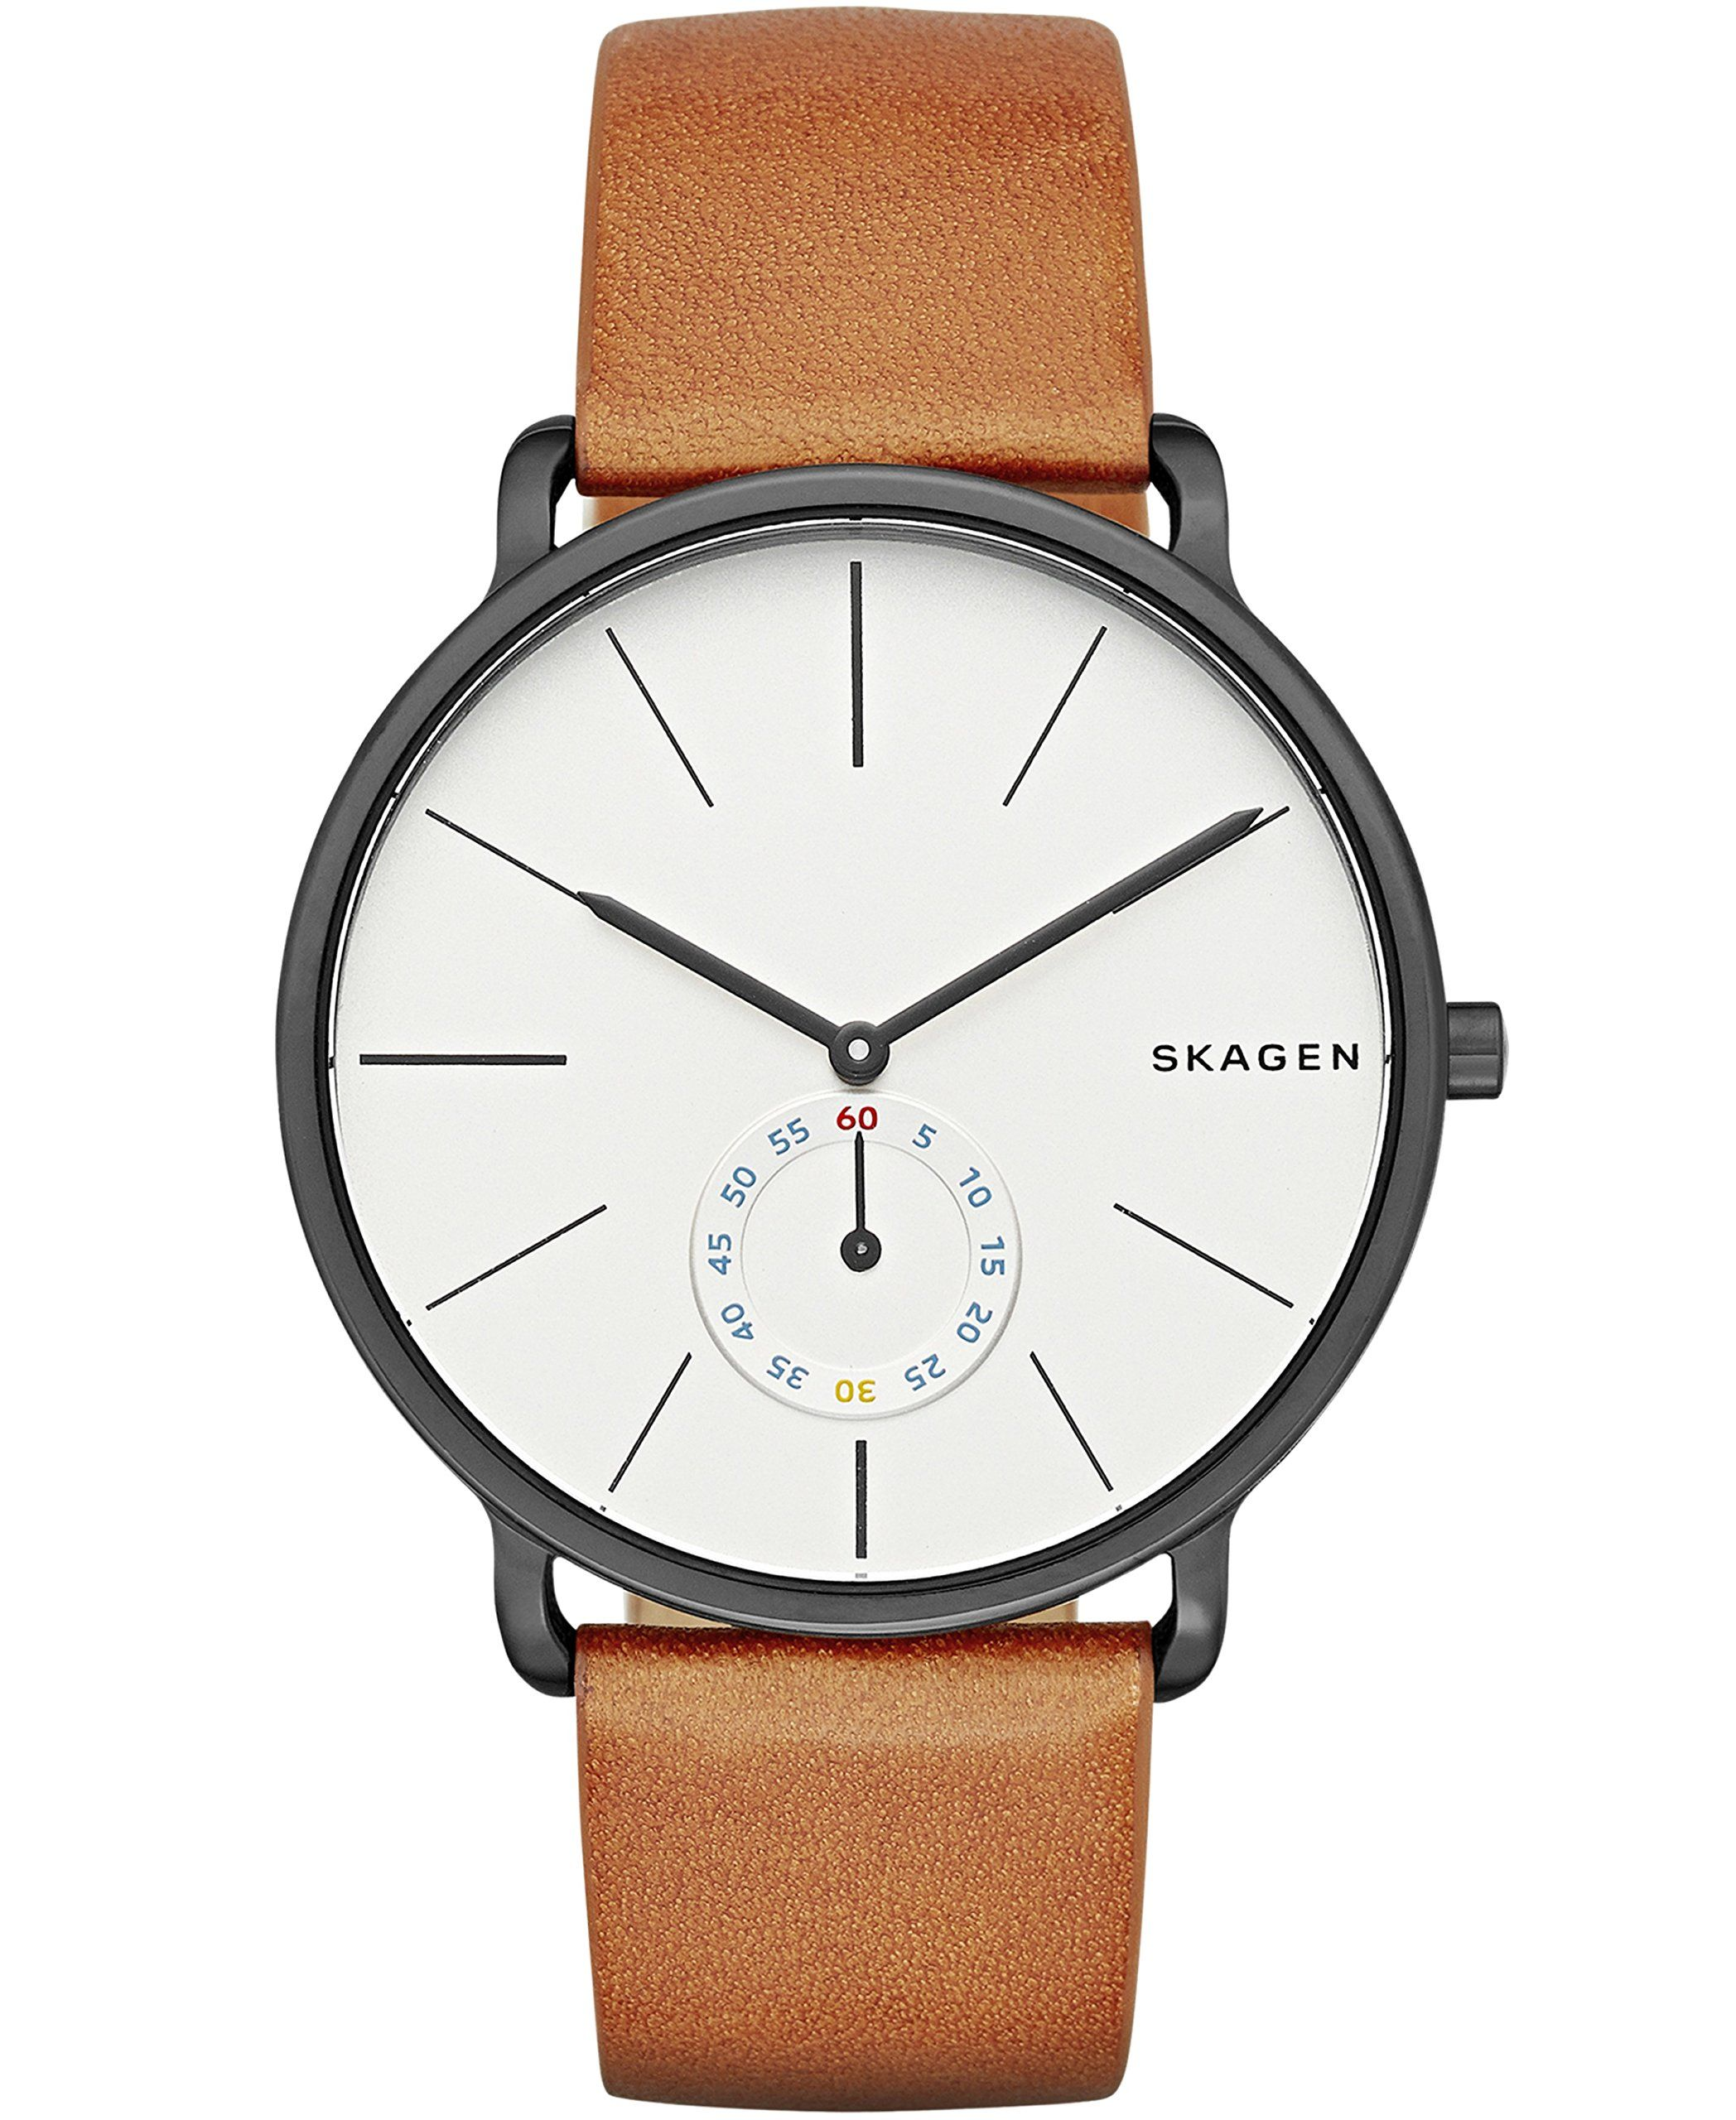 jewelry women s leather skagen brown shipping watches double hagen free watch product today overstock wrap womens